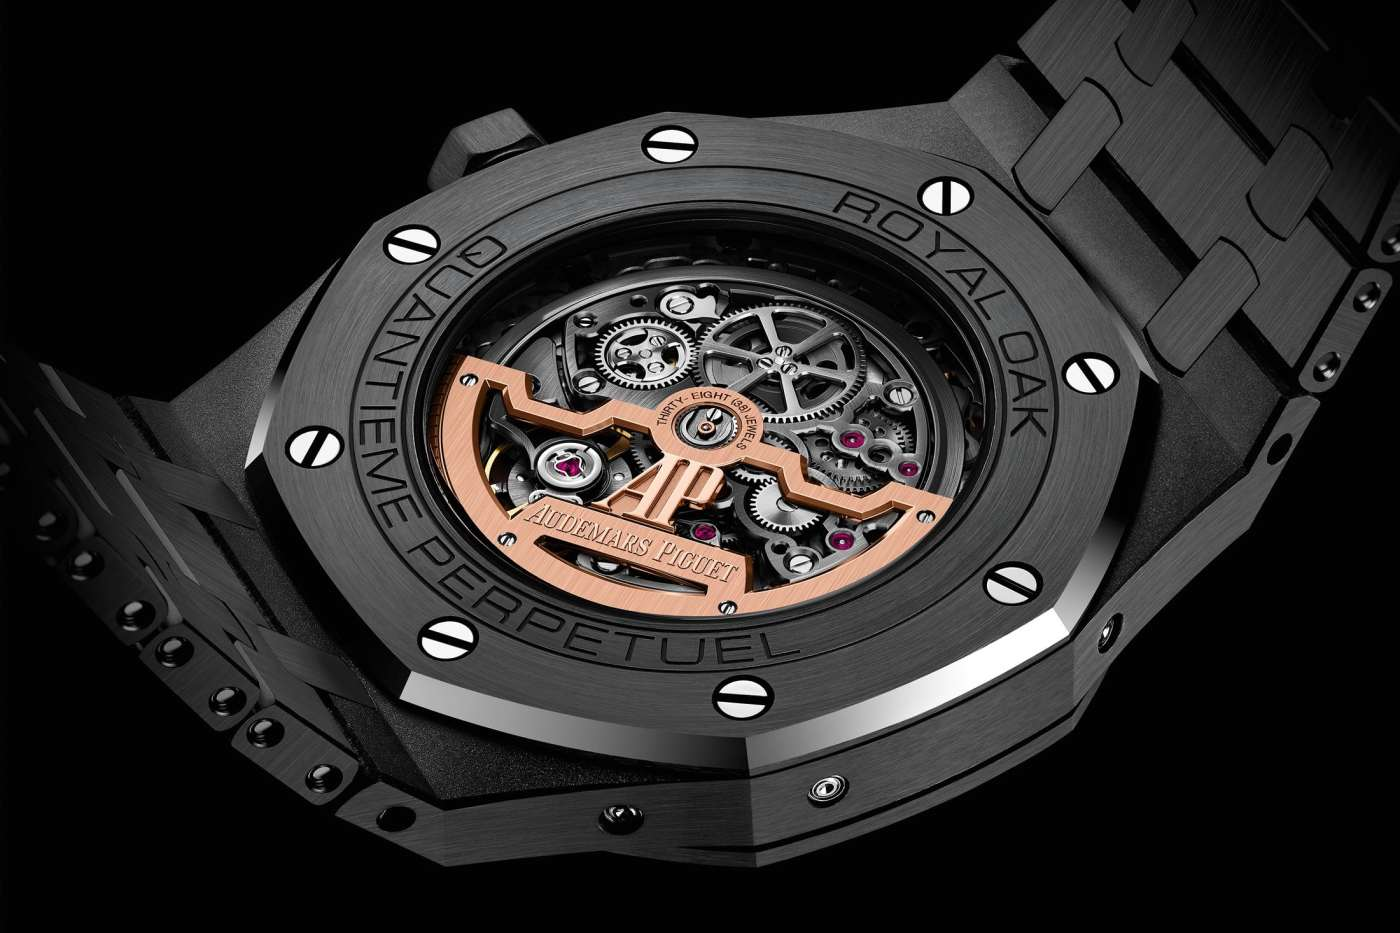 Audemars Piguet Royal Oak Perpetual Calendar Openworked Black Ceramic caseback